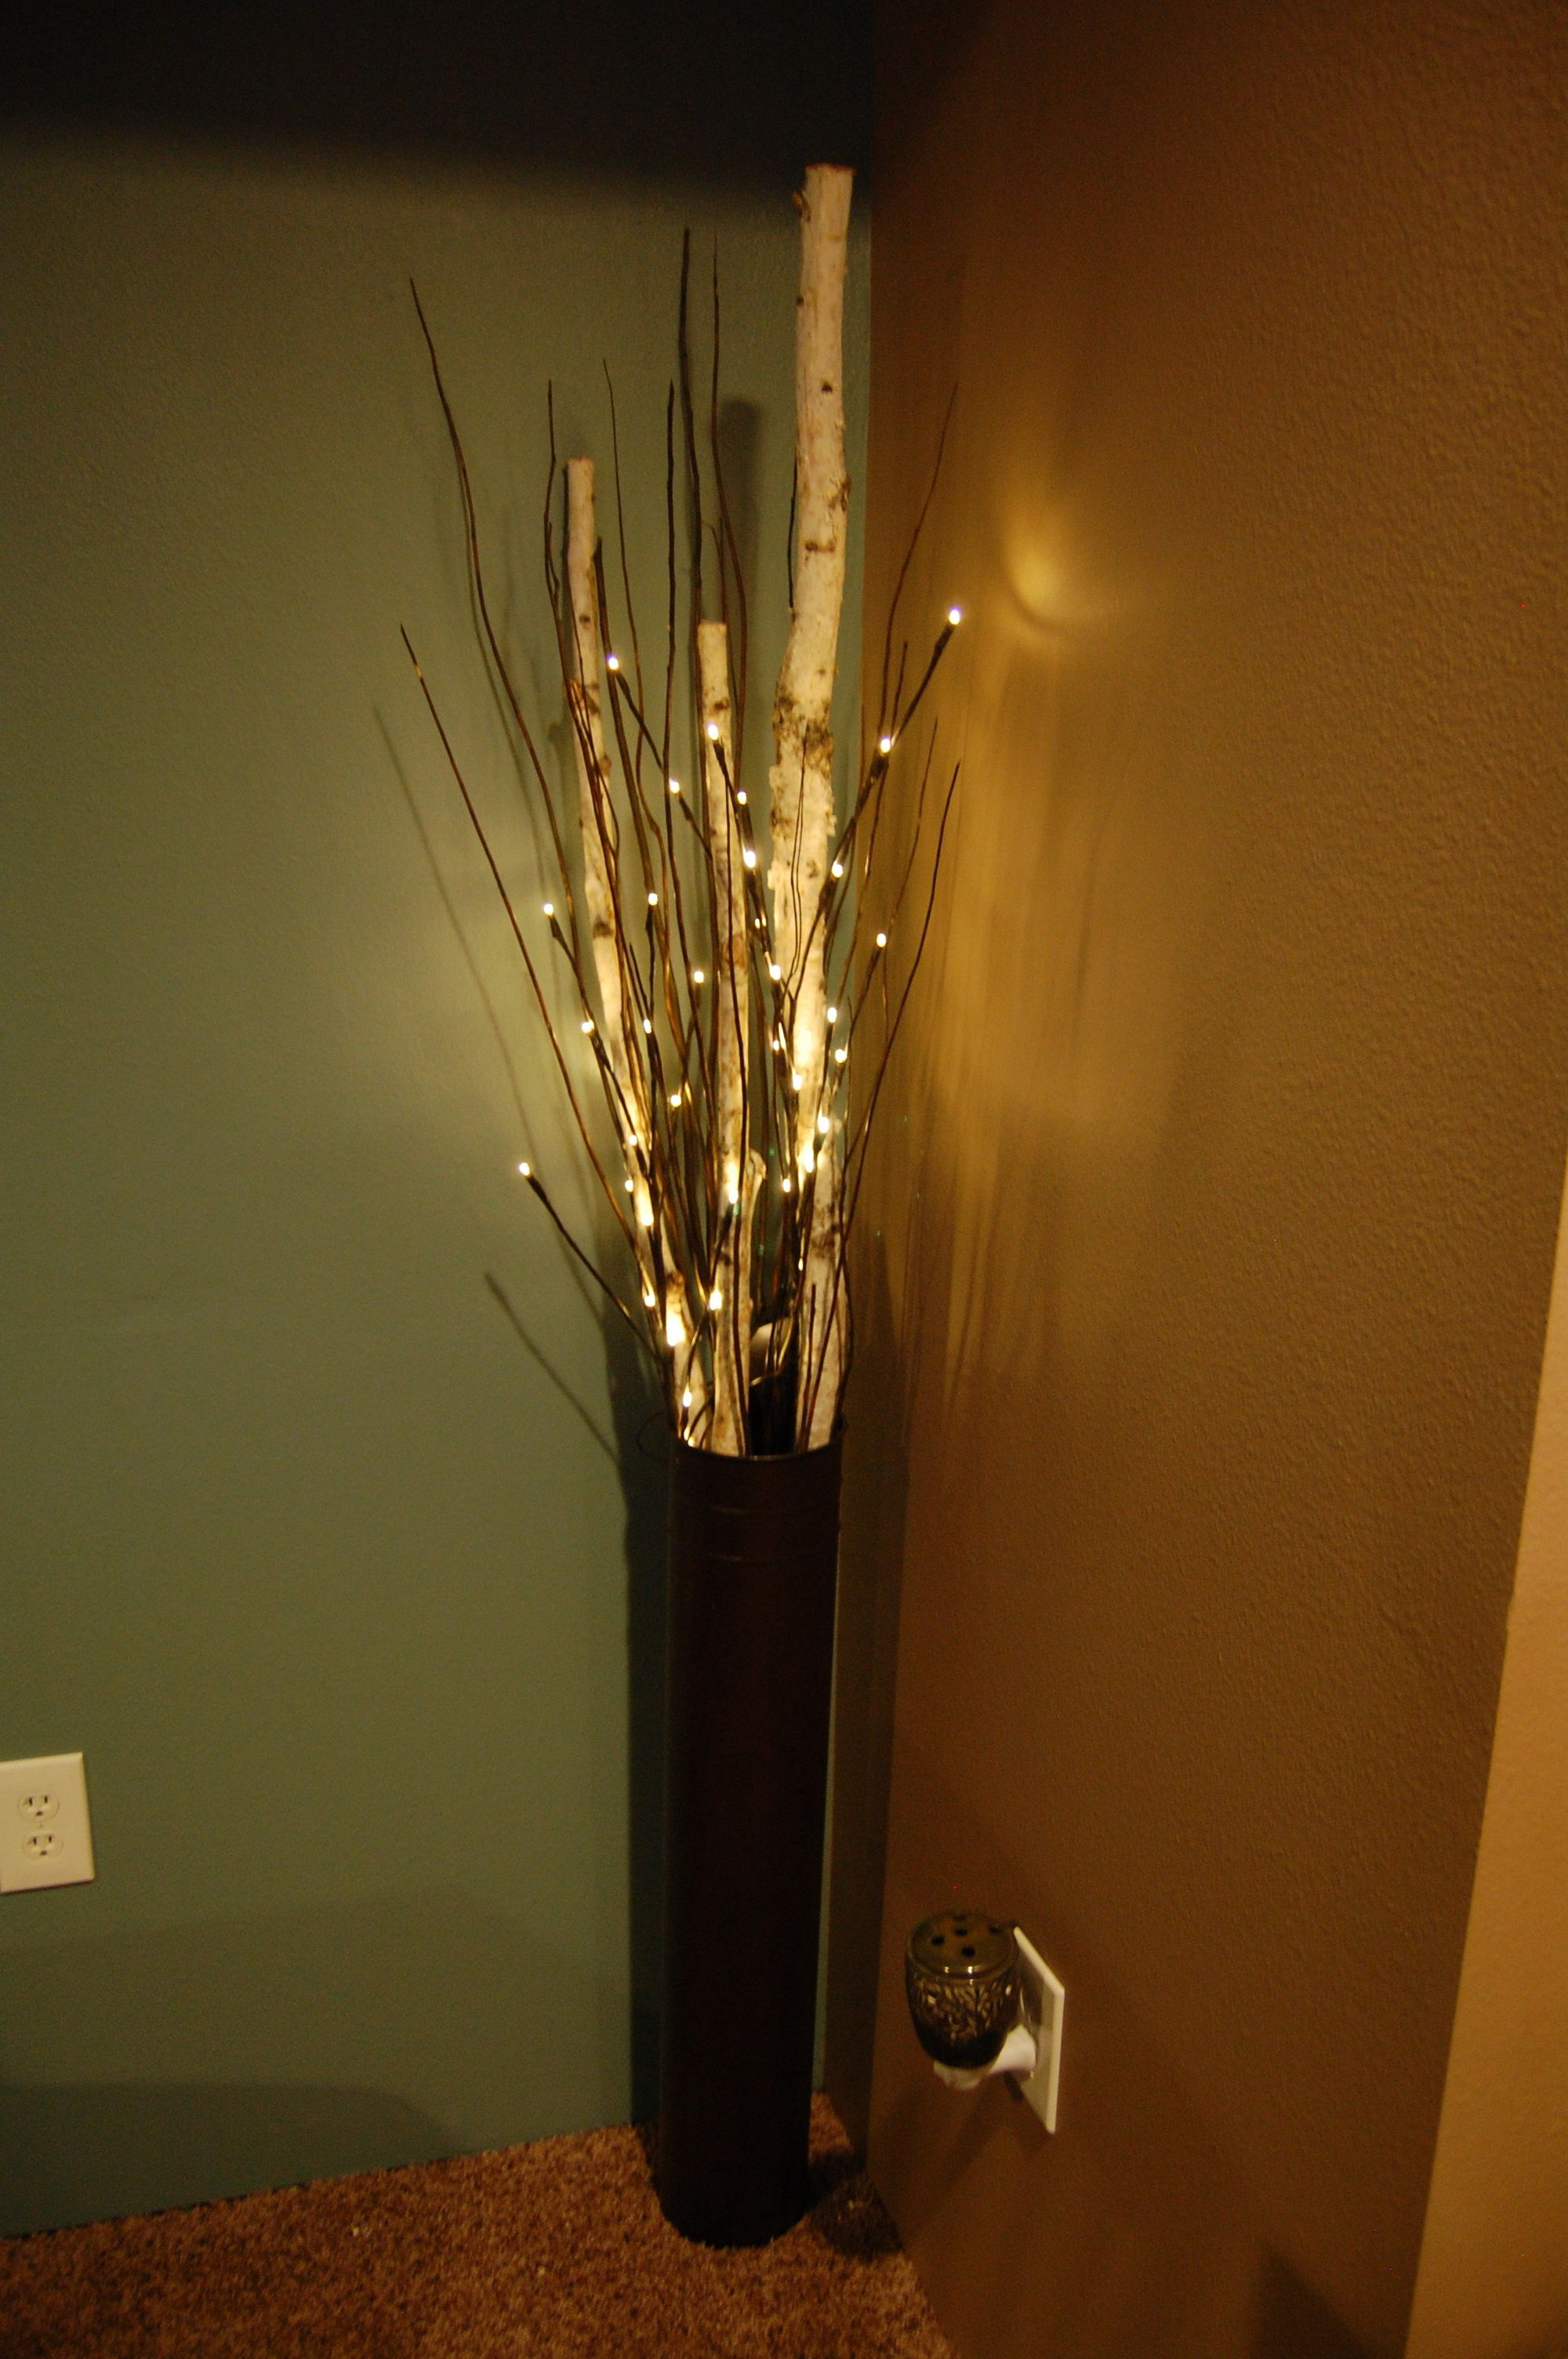 Floor Vase With Birch Branches And Lighted Branches On A 6 Hour